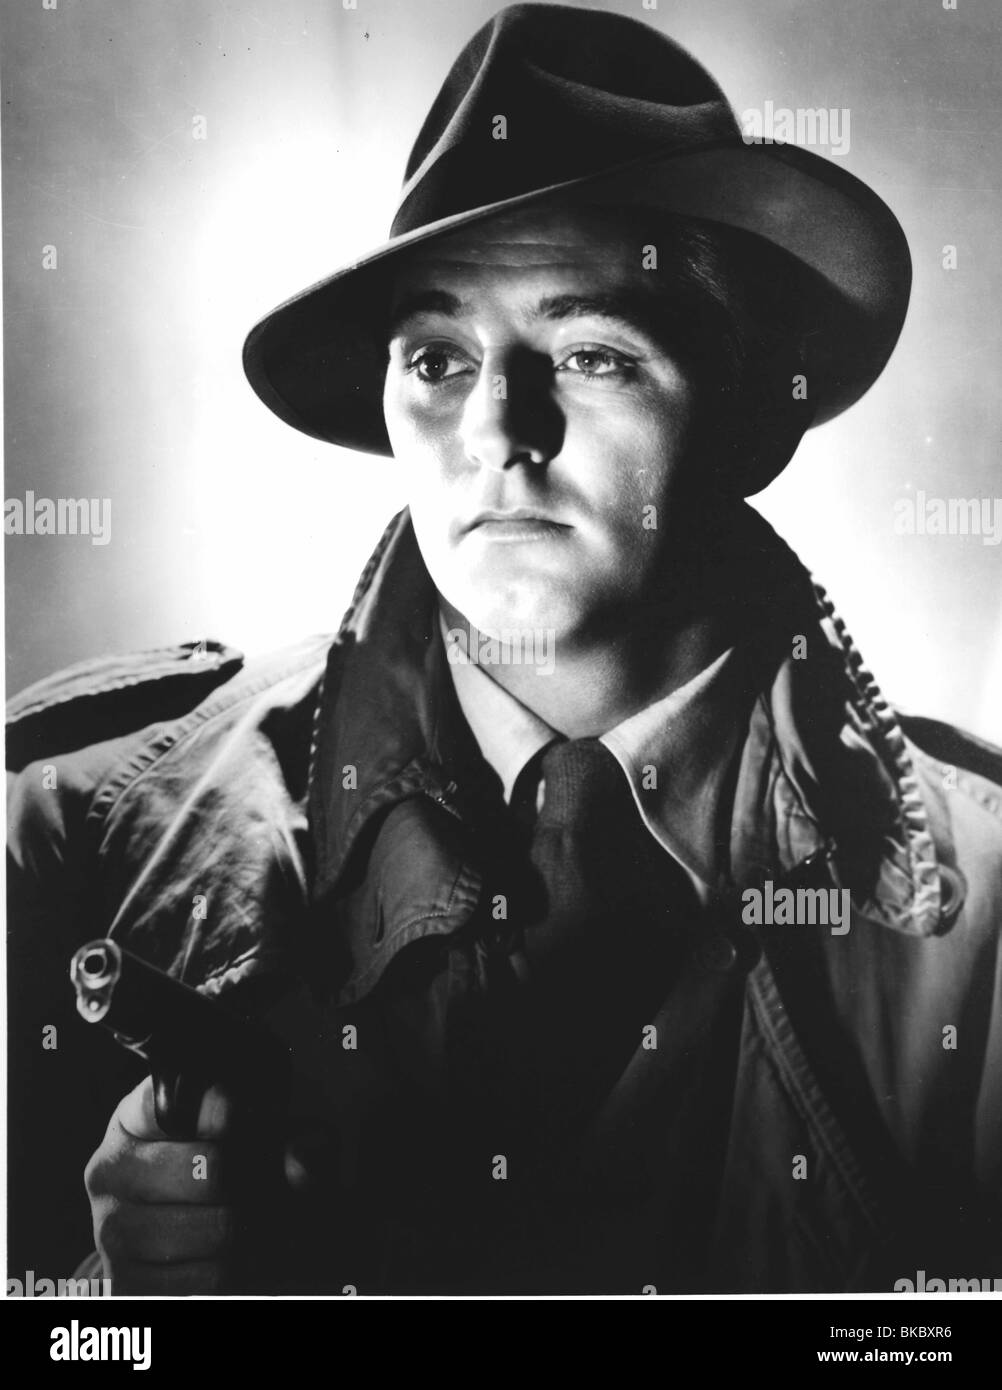 OUT OF THE PAST (1947) BUILD MY GALLOWS HIGH (ALT) ROBERT MITCHUM OOTP 001P - Stock Image